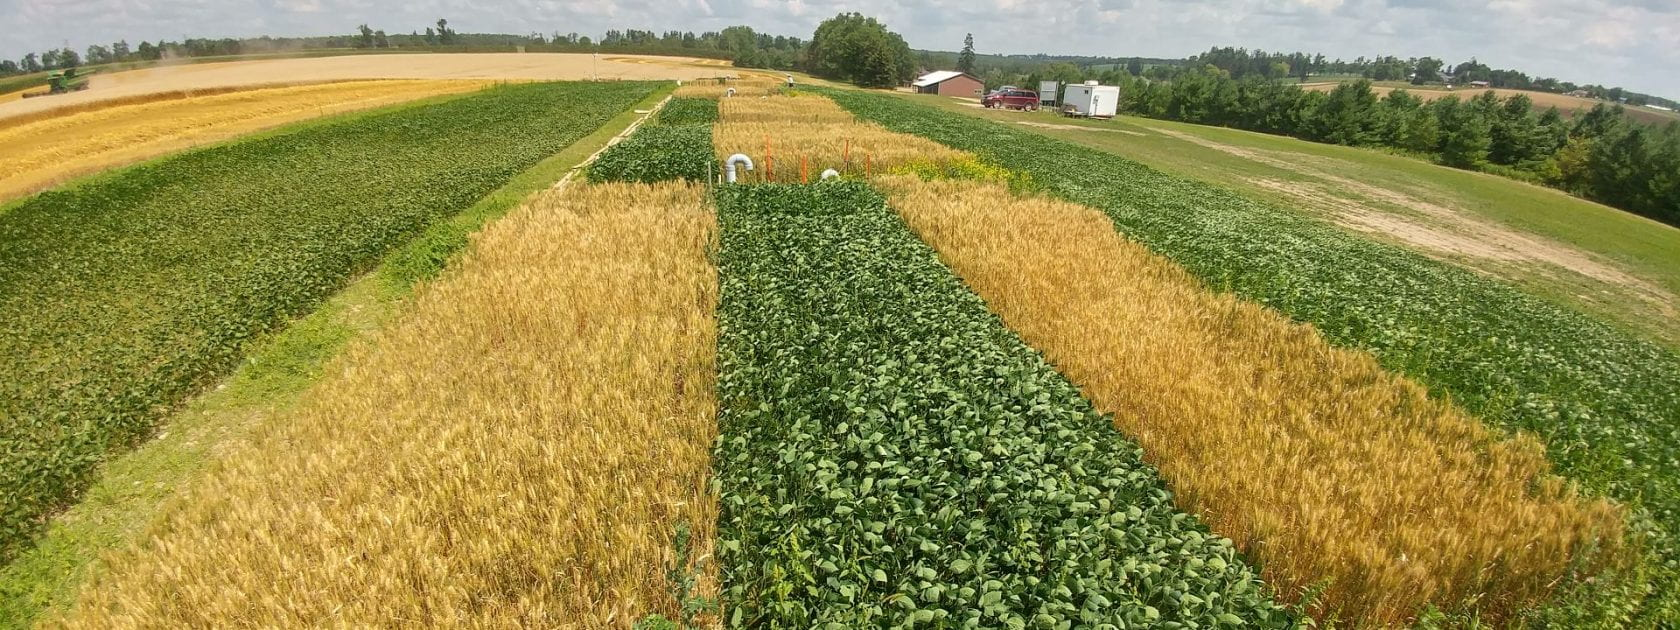 Lysimeter Site in Wheat and Soybean